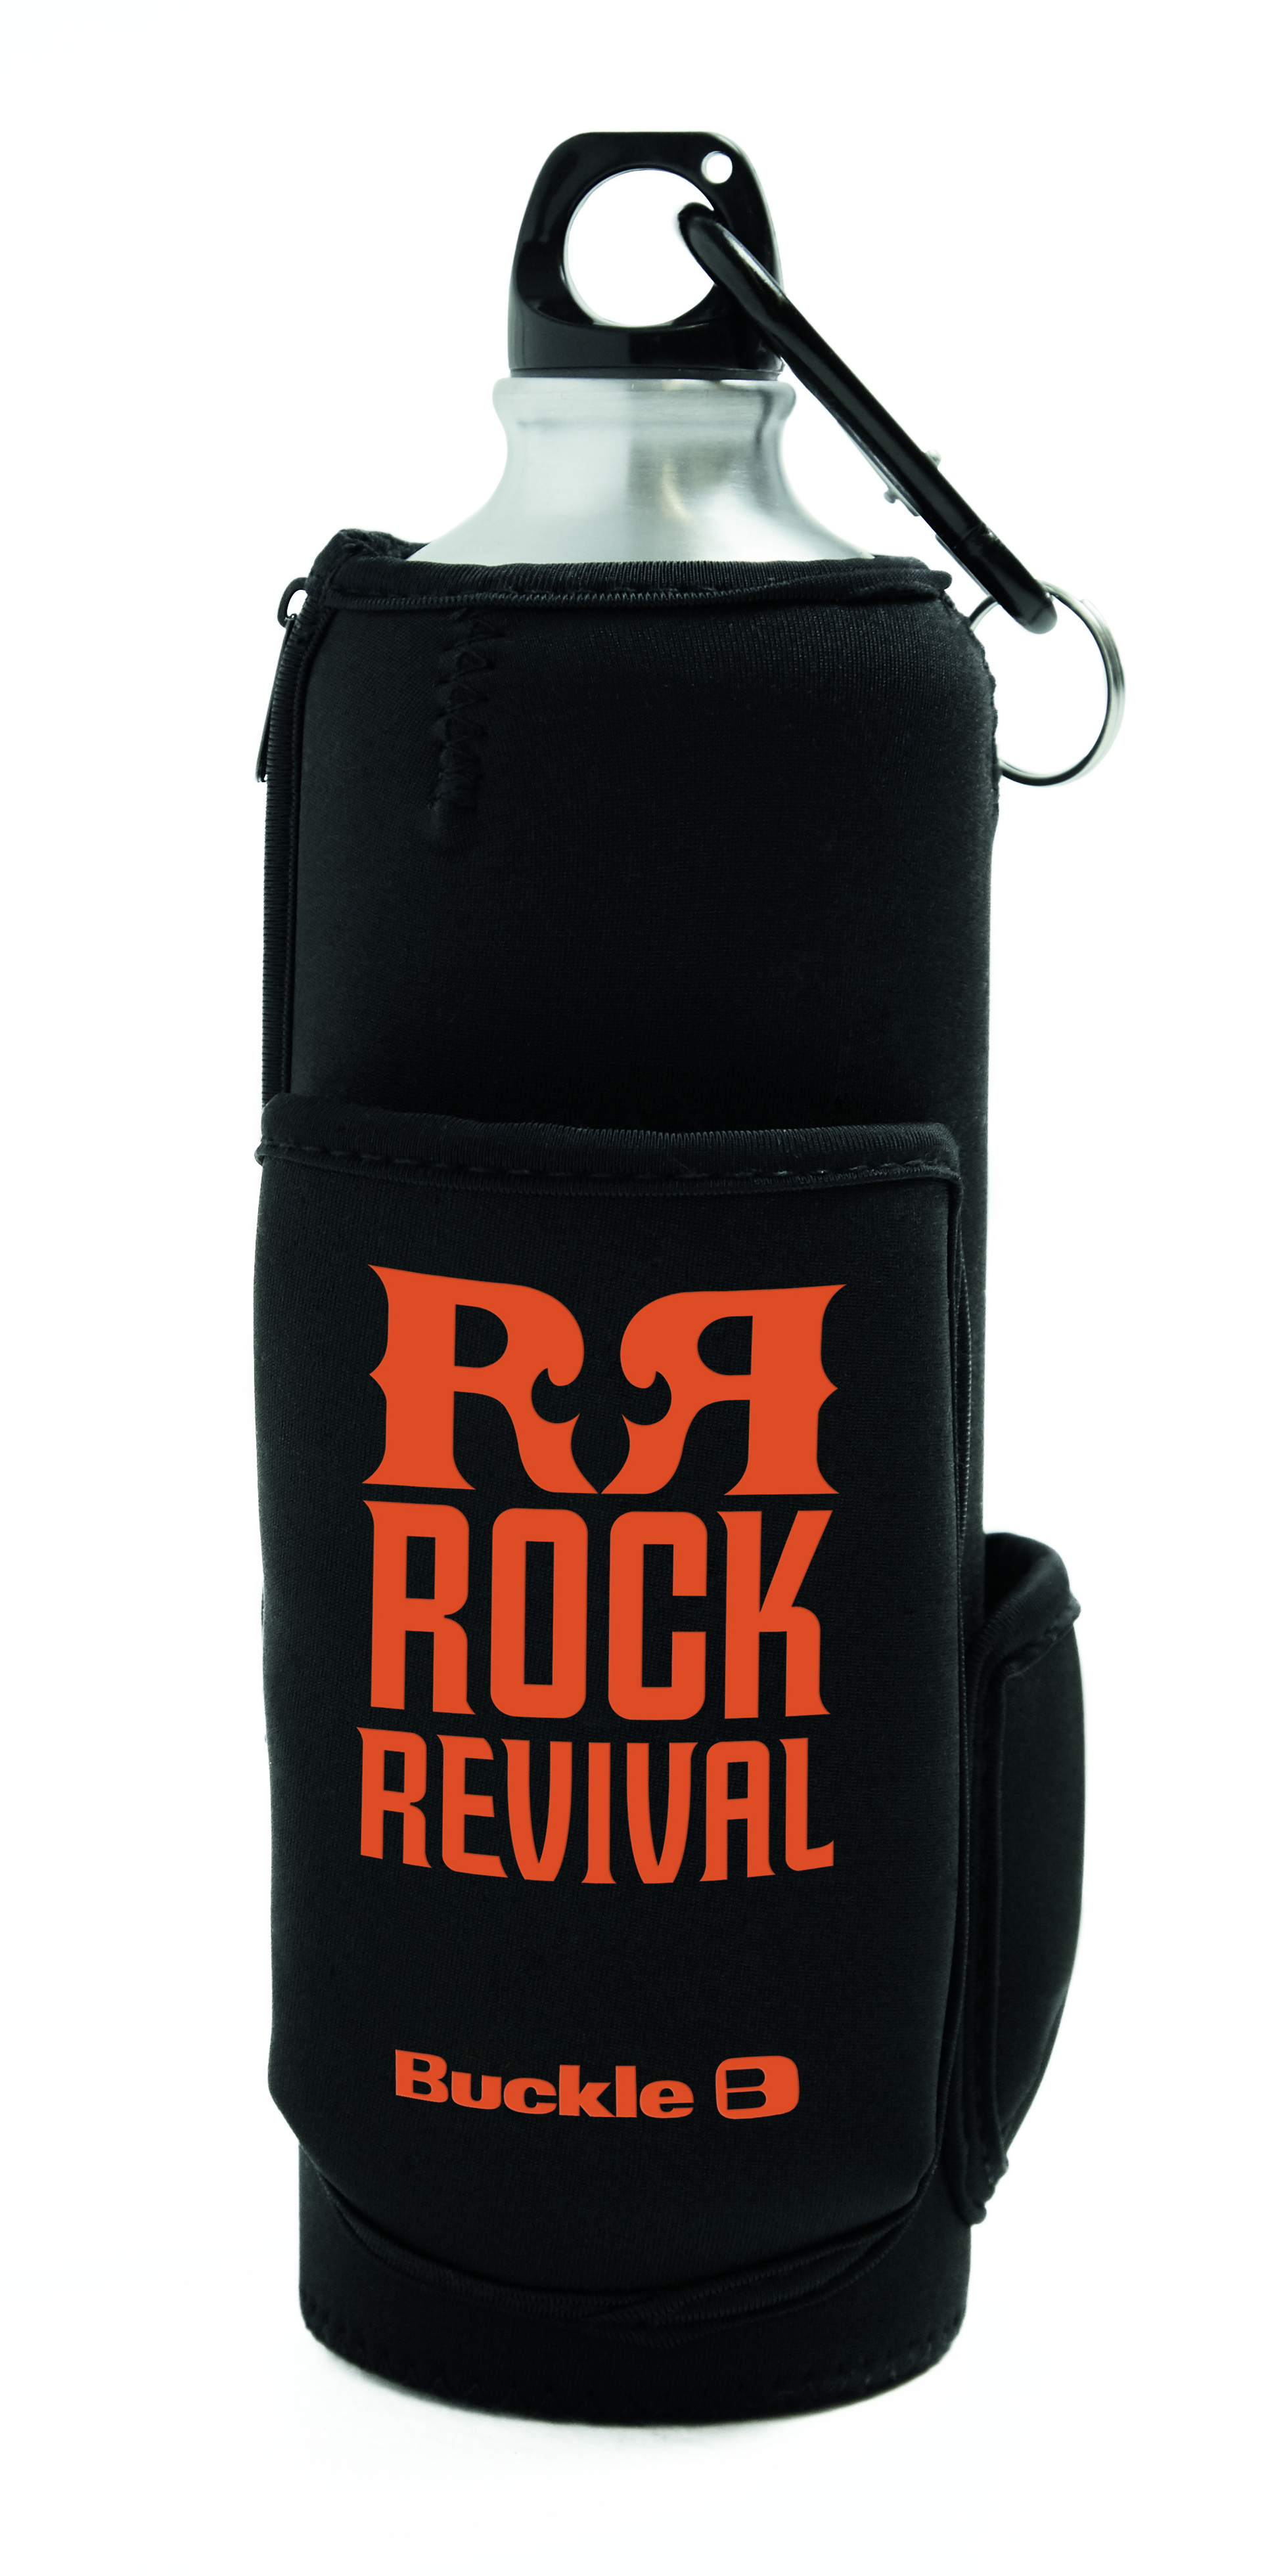 Buckle Brand Event - Rock Revival Water Bottle